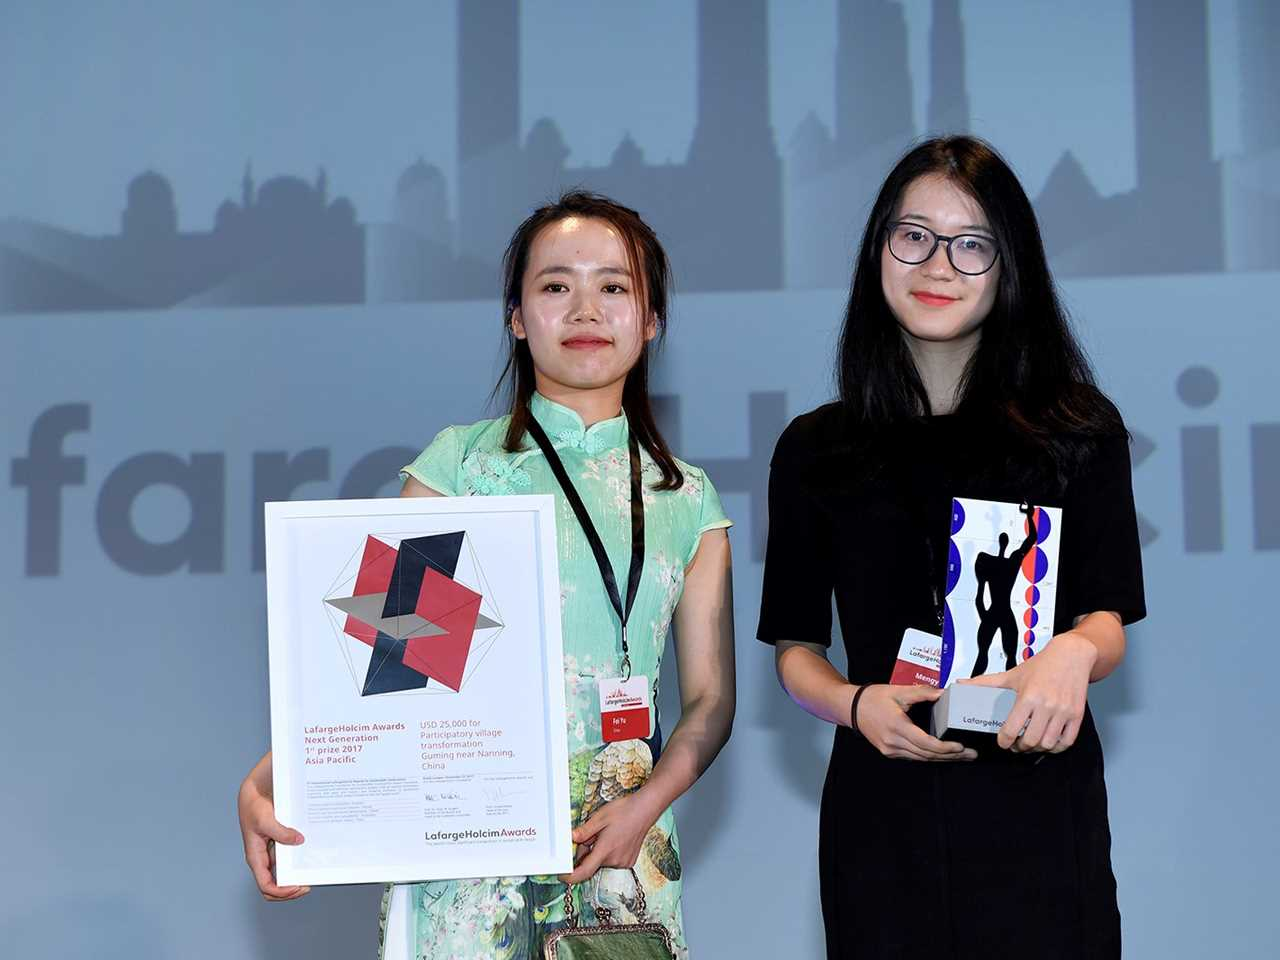 LafargeHolcim Awards 2017 for Asia Pacific prize handover ceremony, Kuala Lumpur